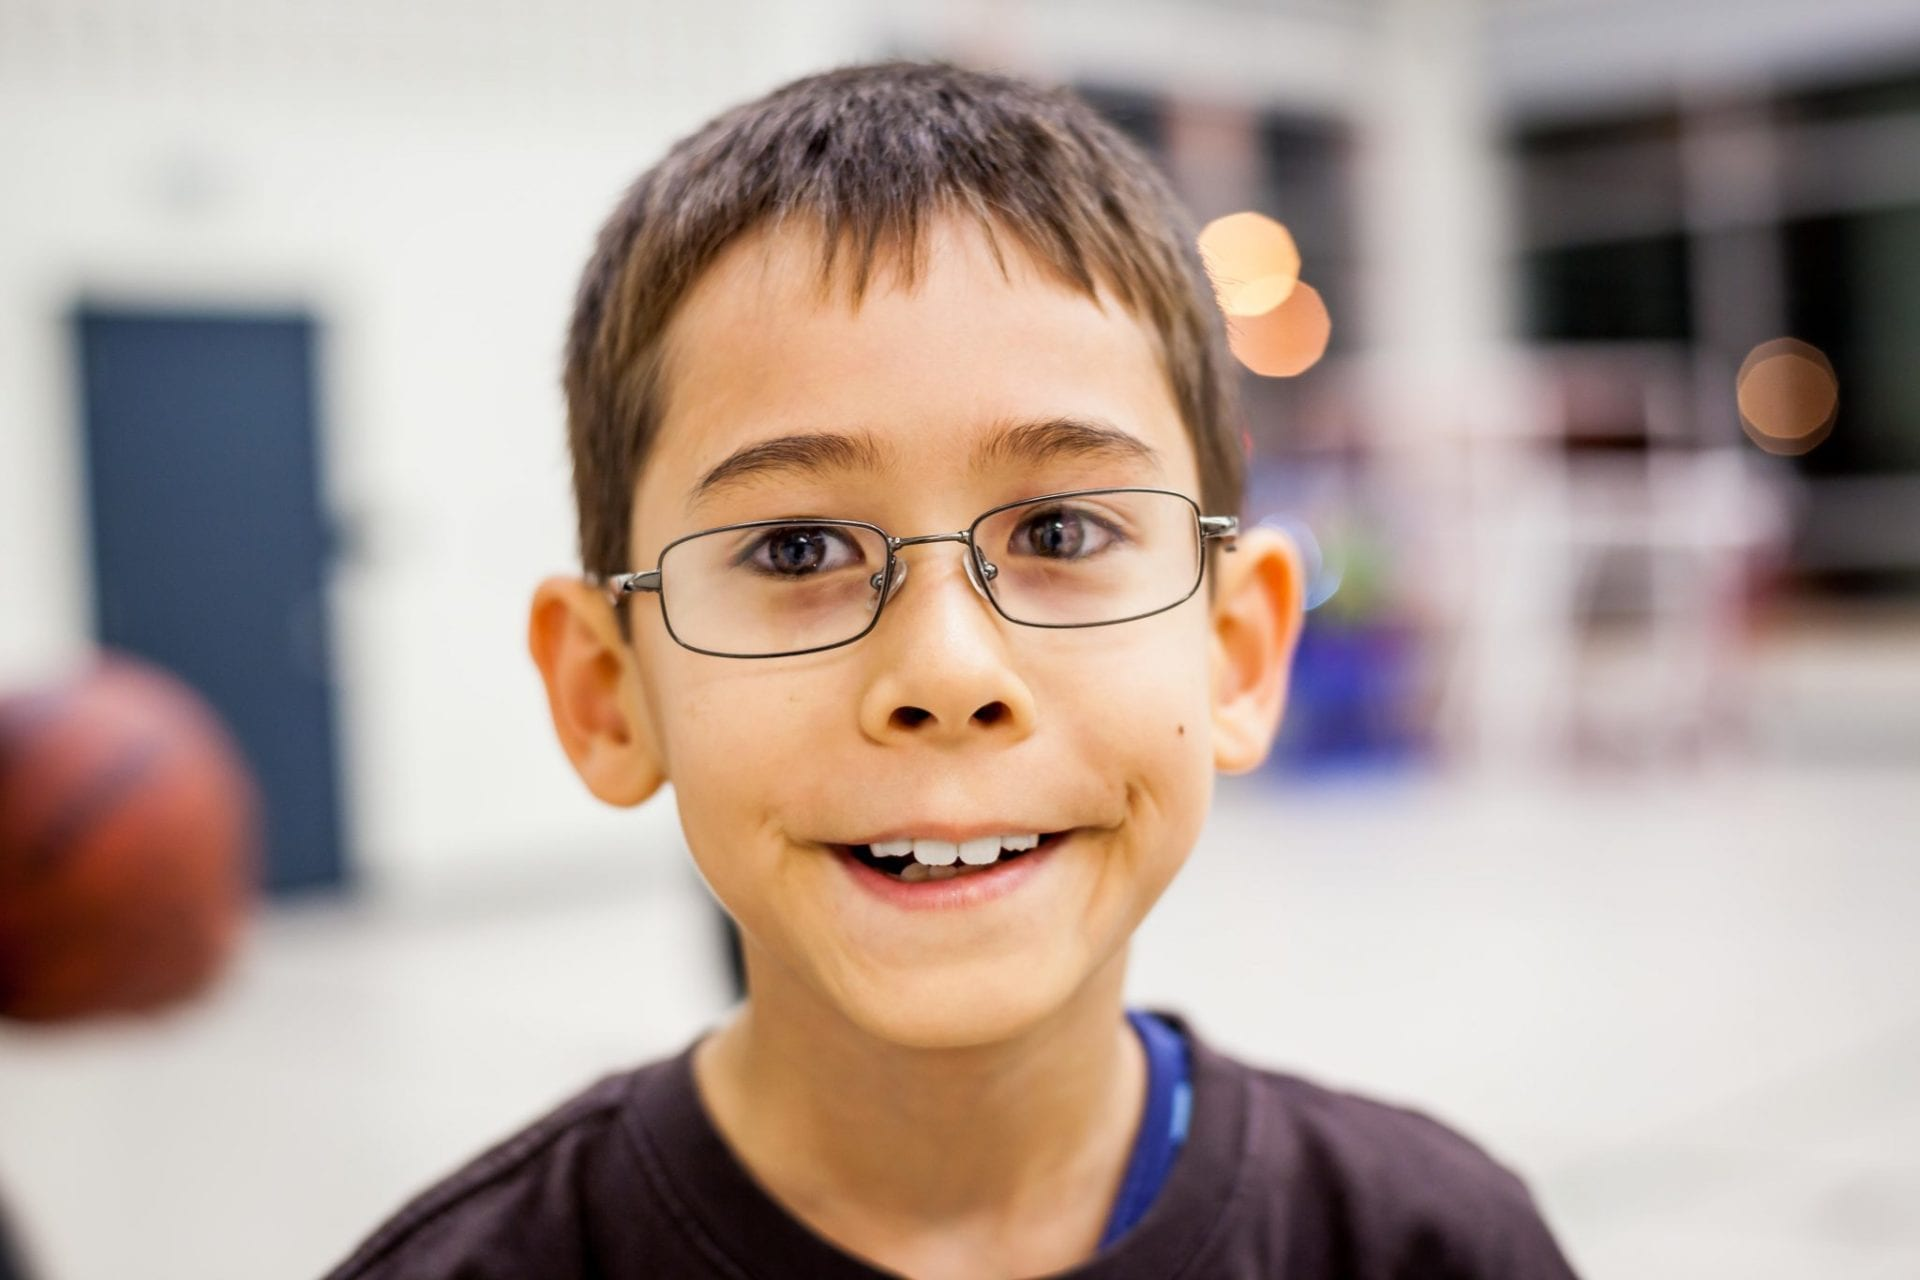 Physical Lifestyle for Autistic Youth